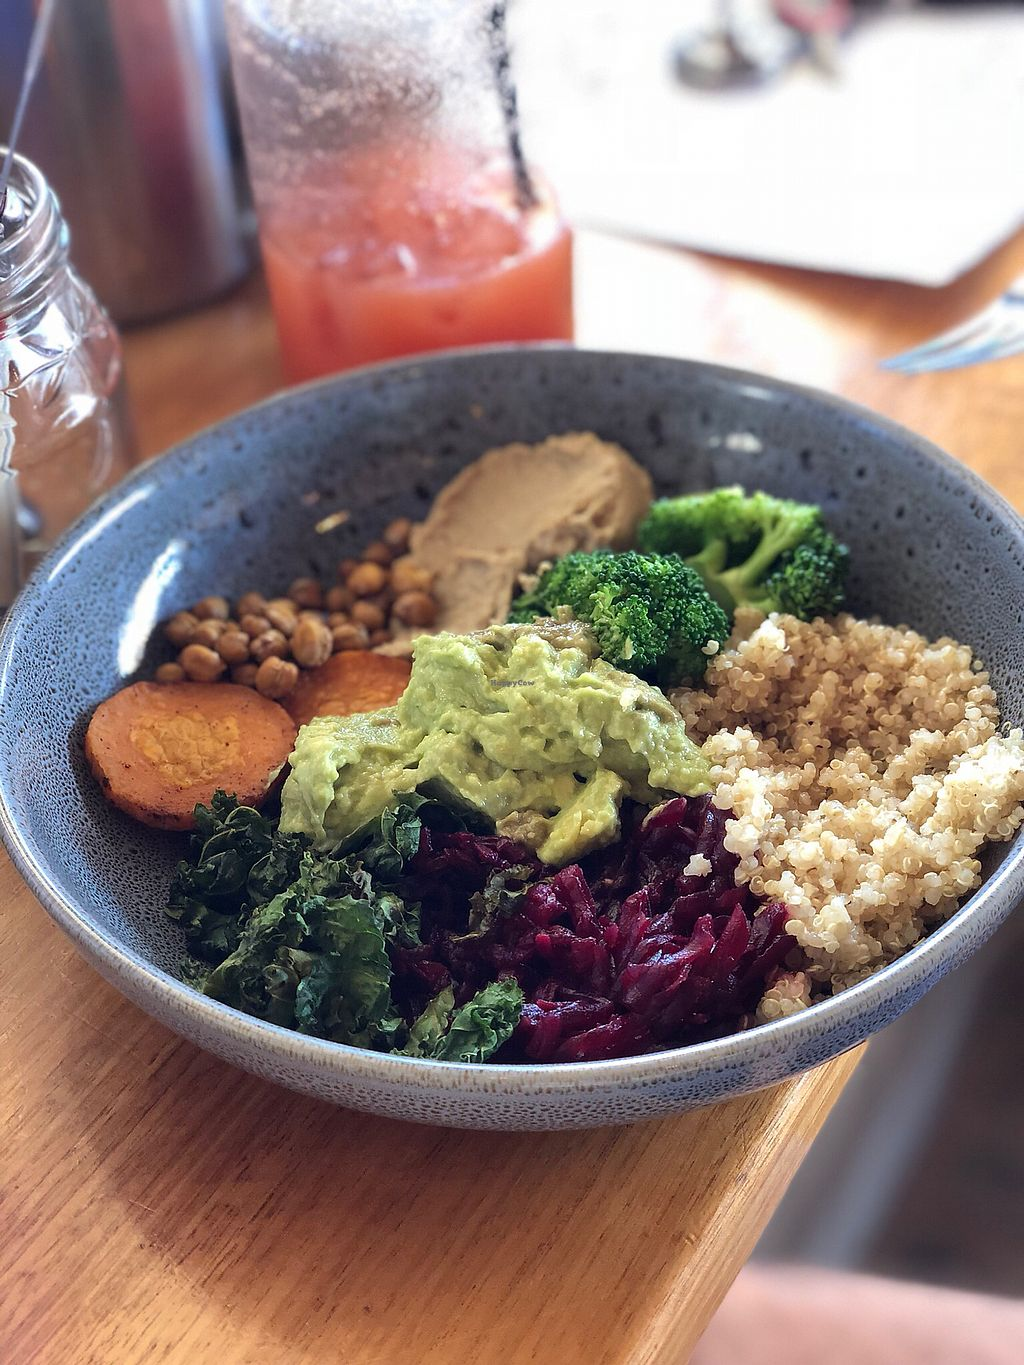 "Photo of Doc Yarrum Cafe  by <a href=""/members/profile/Zacthevegan"">Zacthevegan</a> <br/>Health Nut bowl <br/> January 7, 2018  - <a href='/contact/abuse/image/108833/343959'>Report</a>"